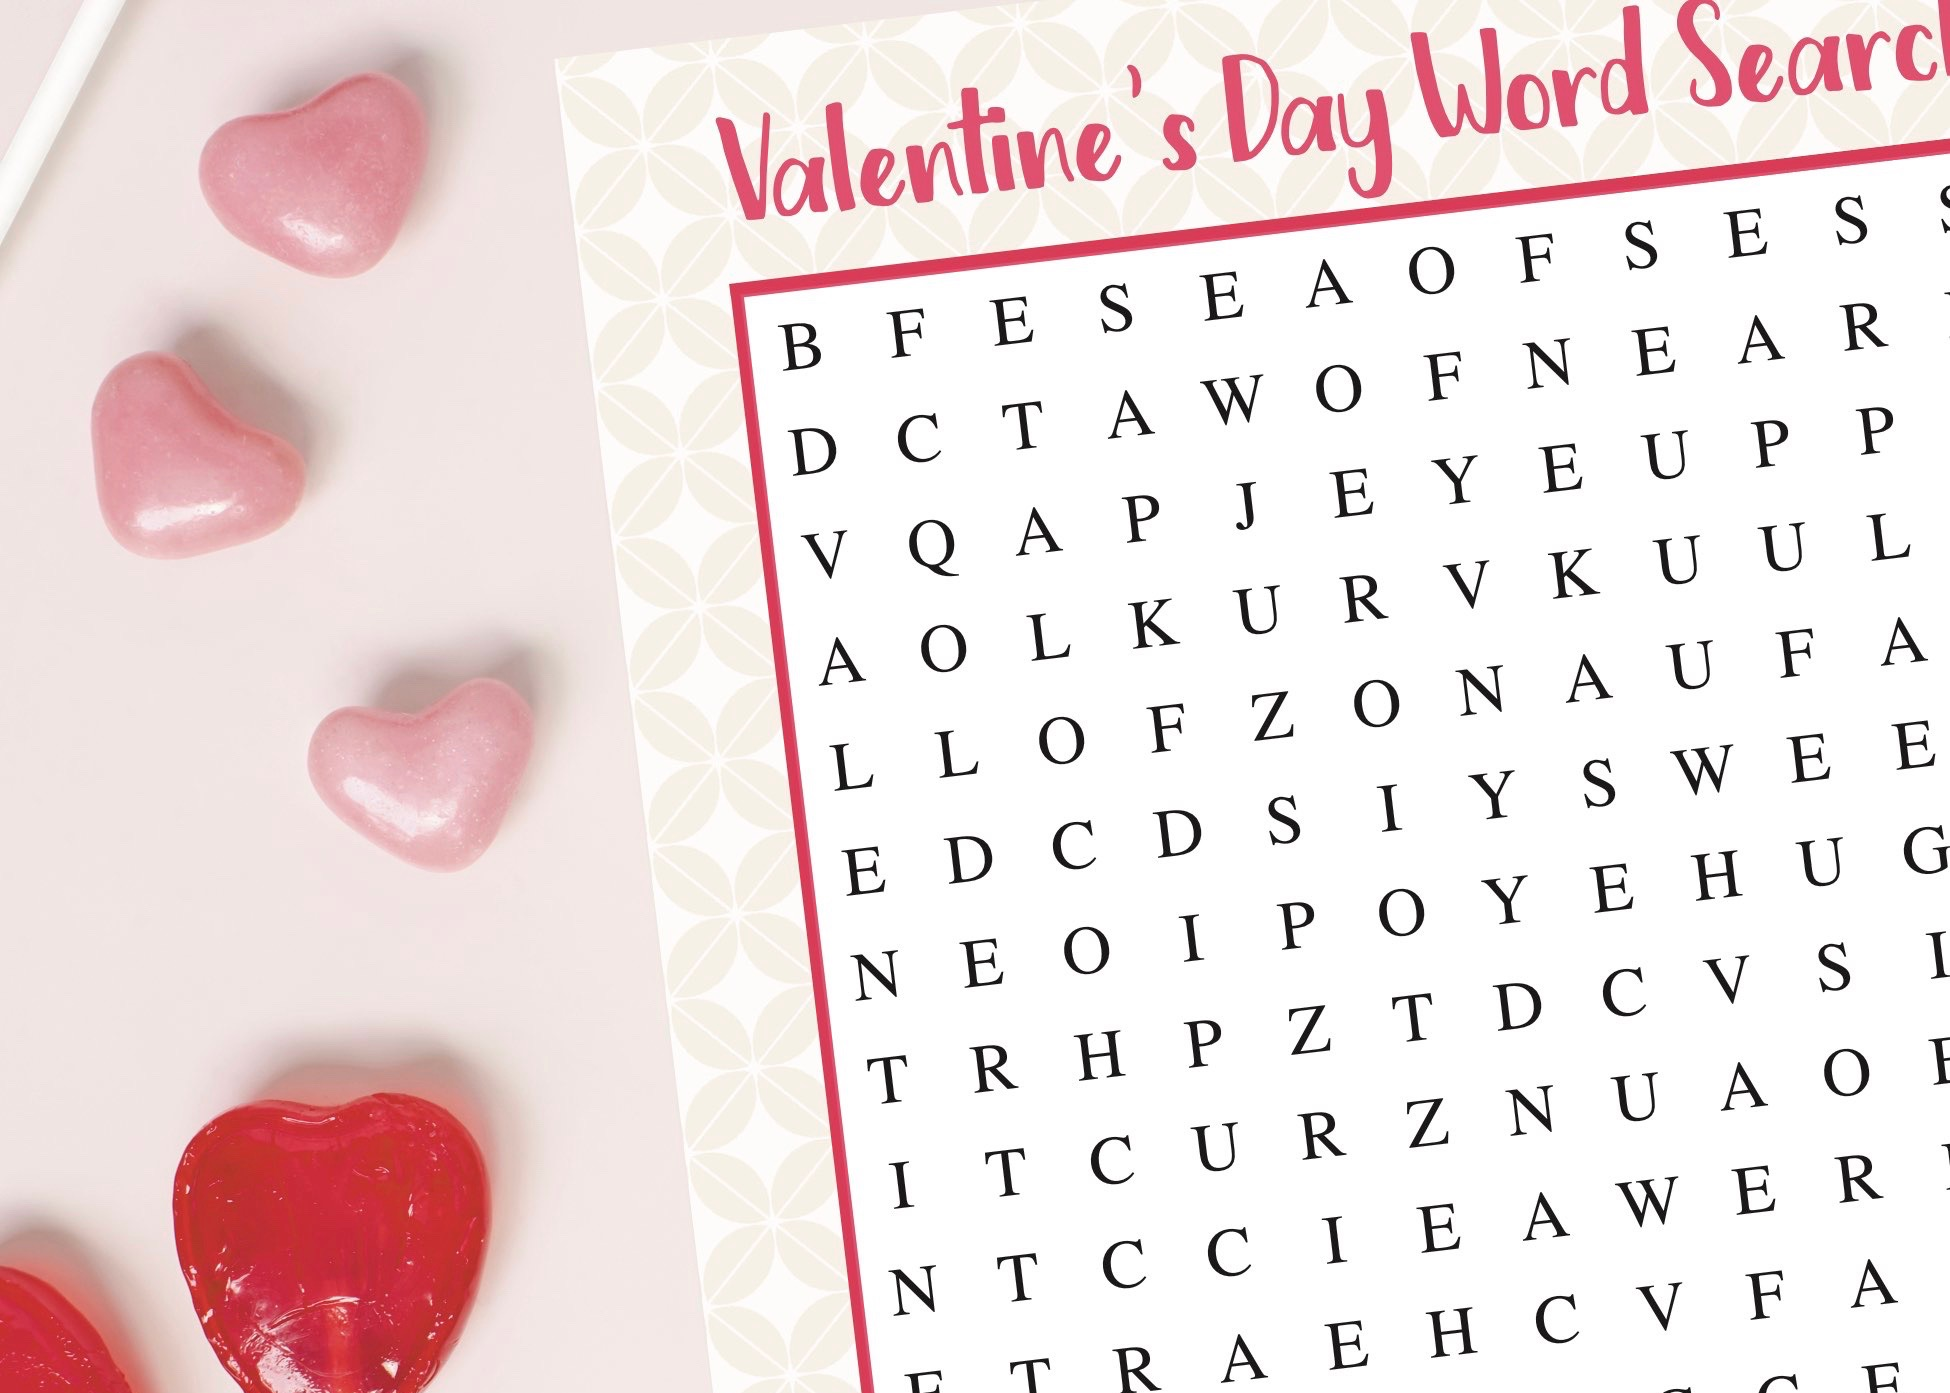 photo regarding Valentine Word Search Printable named Valentines Working day Term Glance Printable - Day-to-day Social gathering Journal